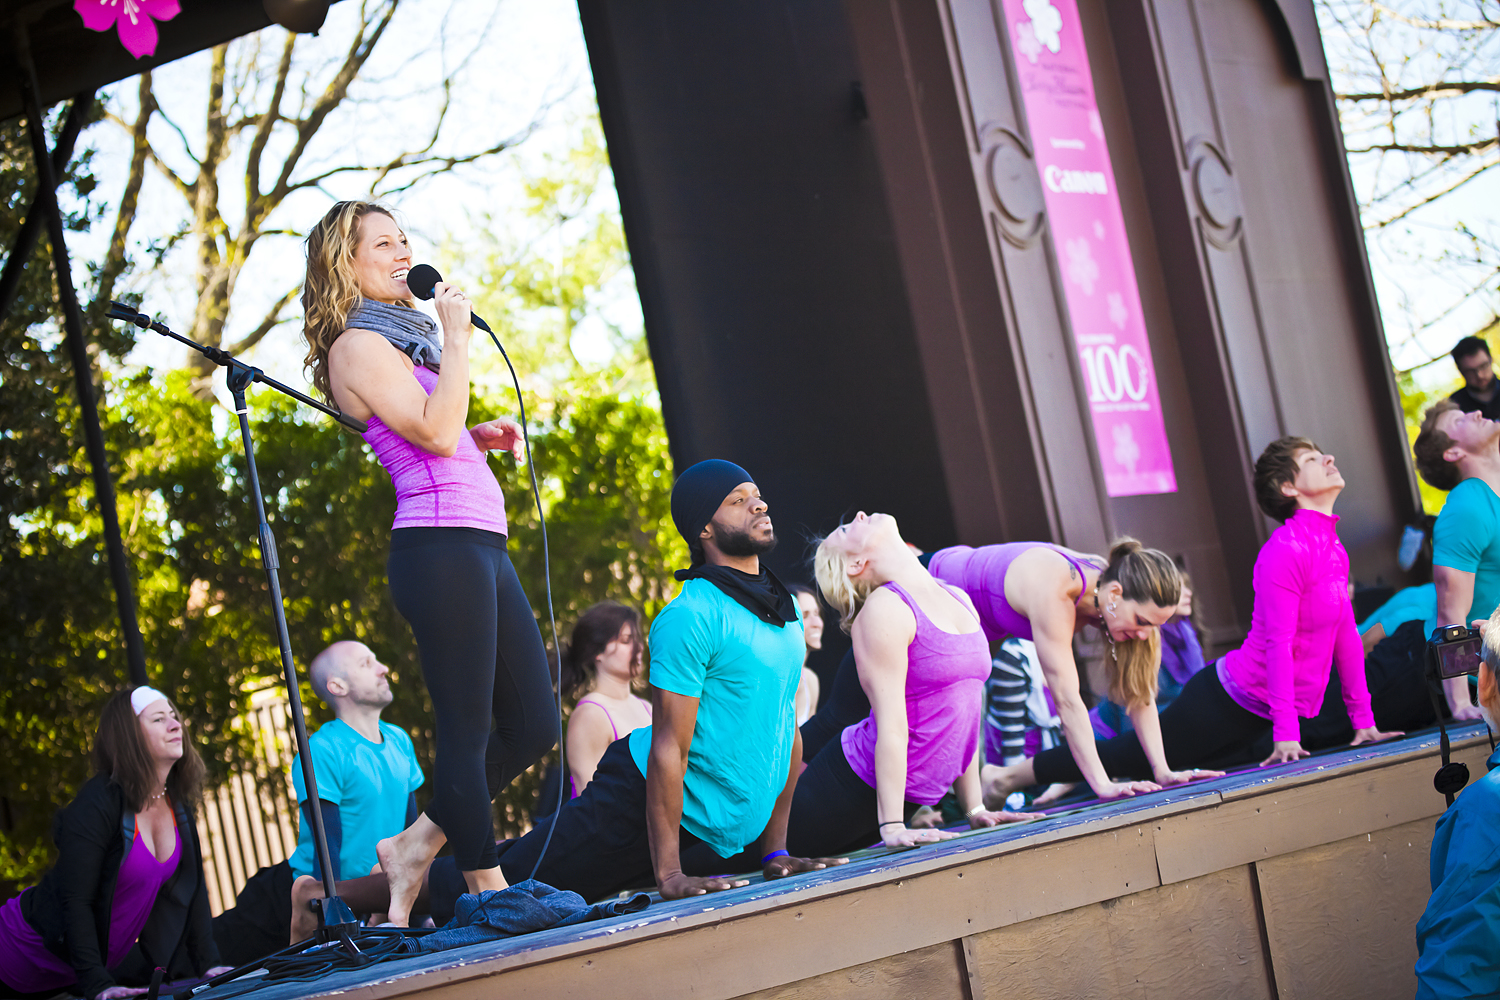 Alison Adams Homegrow Power Yoga at Cherry Blossom Yoga on the Mall